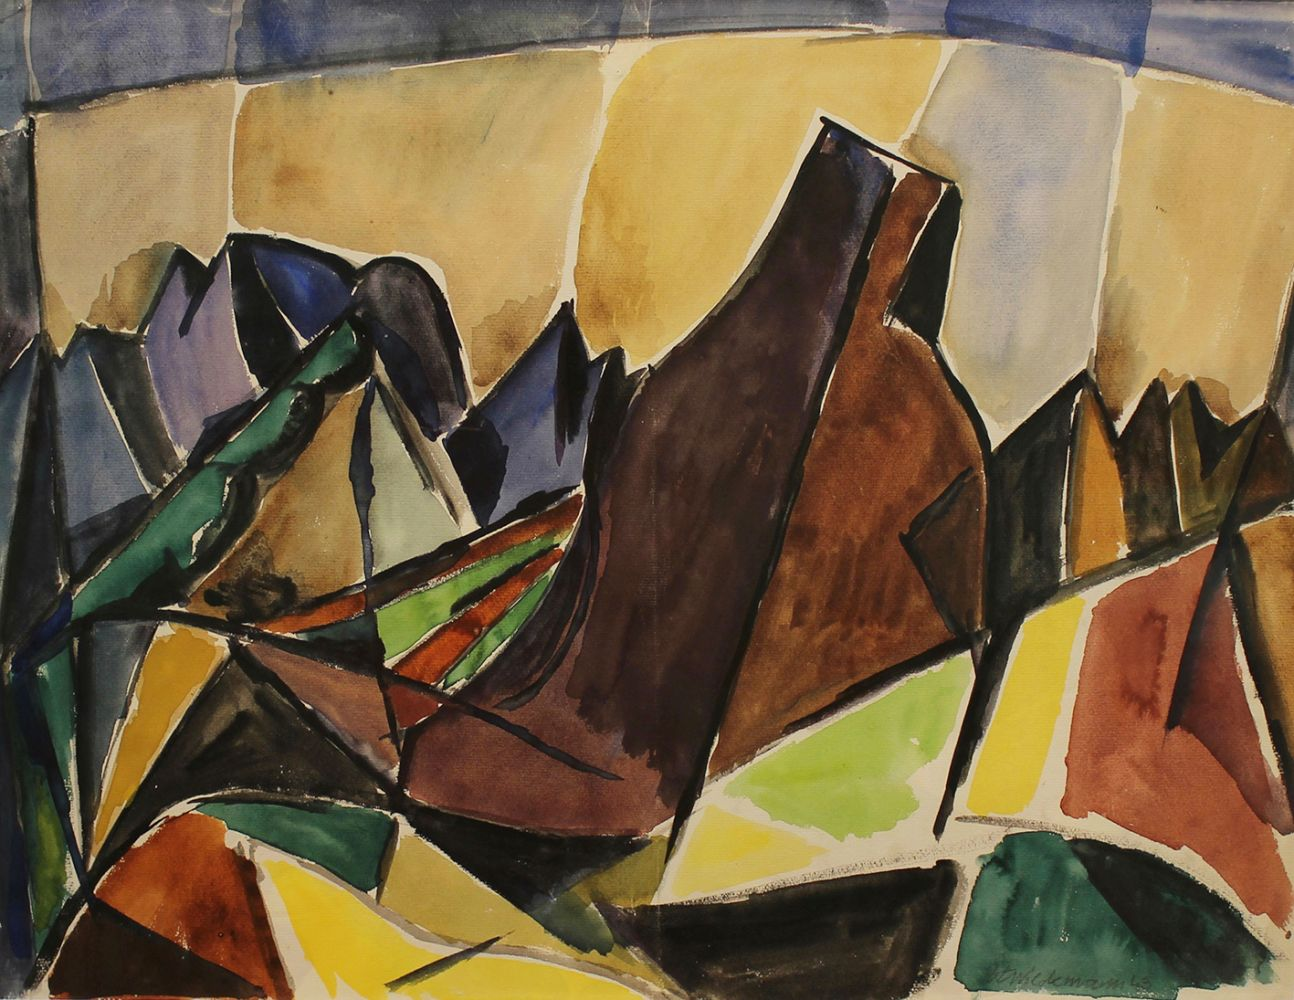 Heinrich Wildmann | Composition (Landscape) | 1943 | watercolour | signed and dated | 62.3 x 31